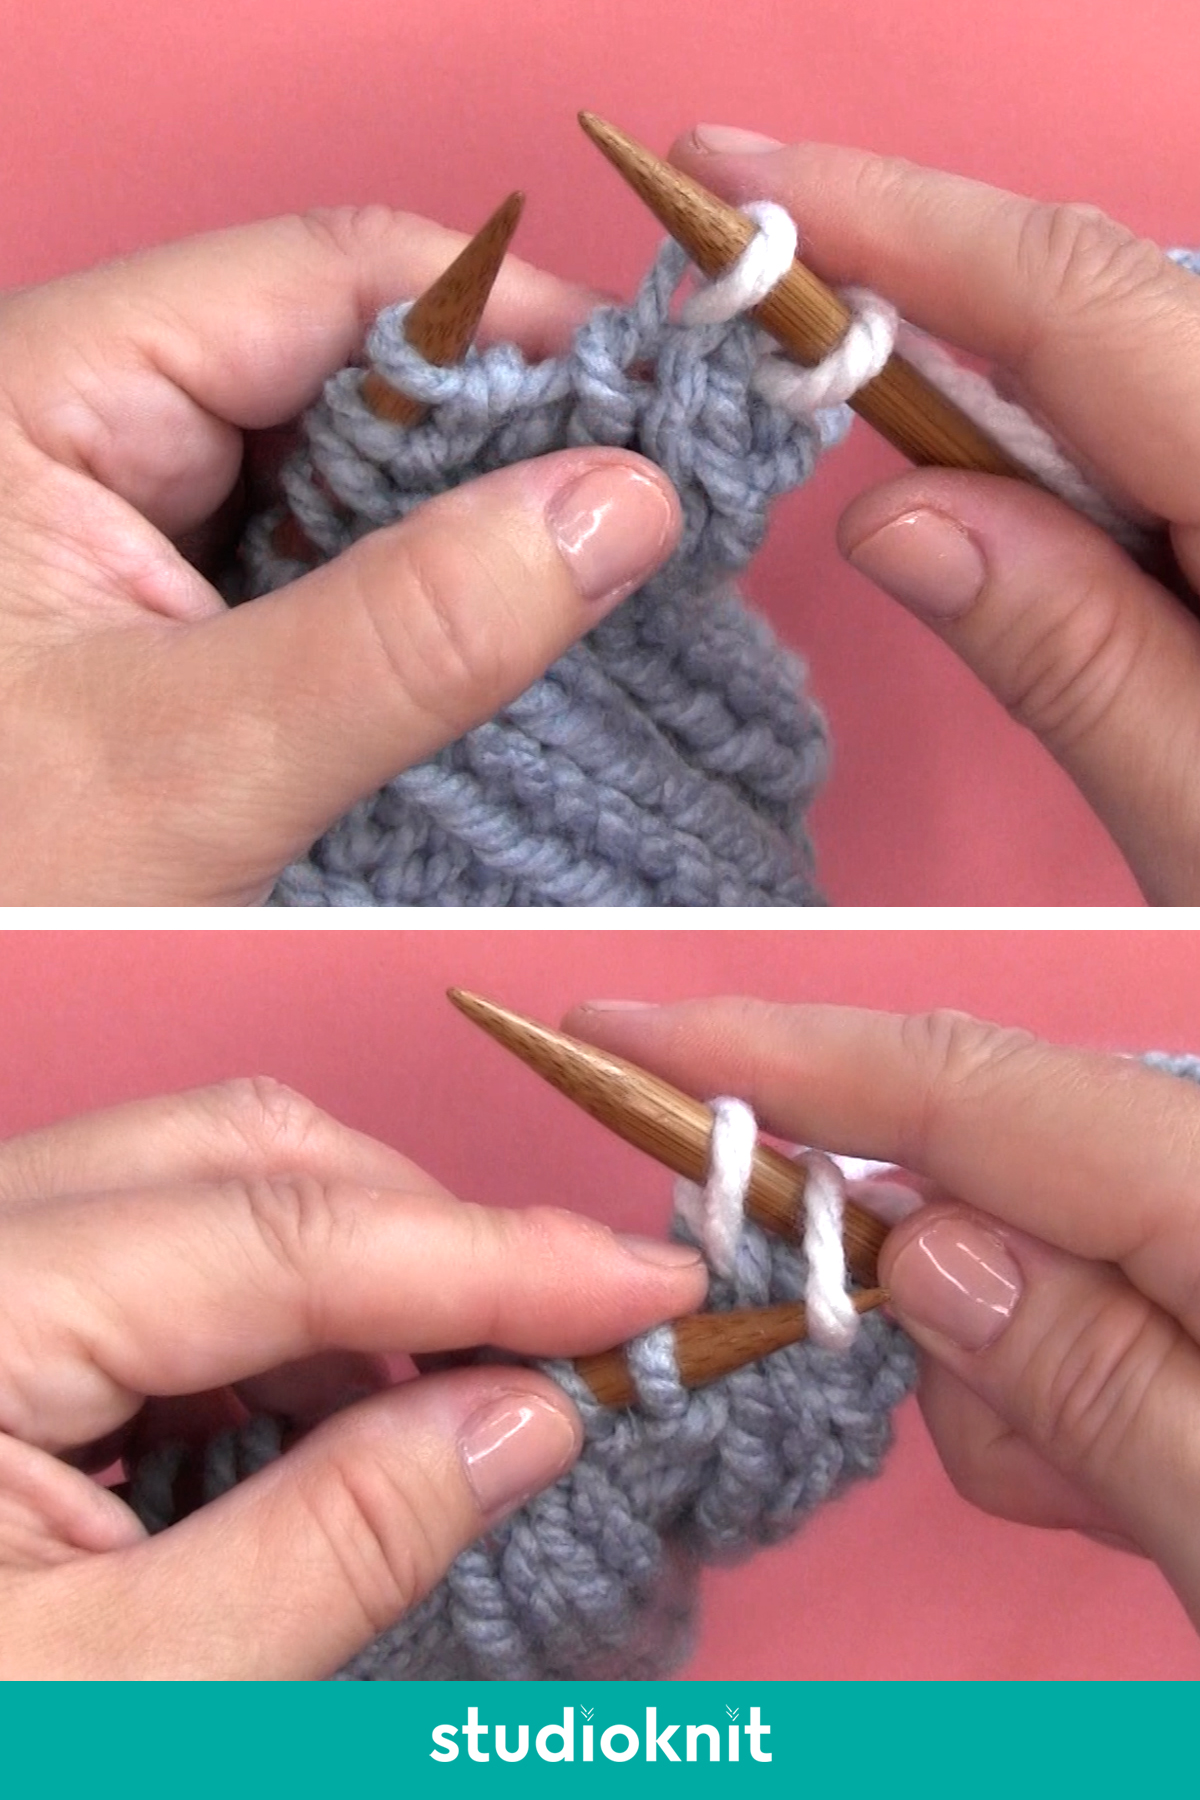 Demonstration of casting off knitwise with hands, yarn, and knitting needles.